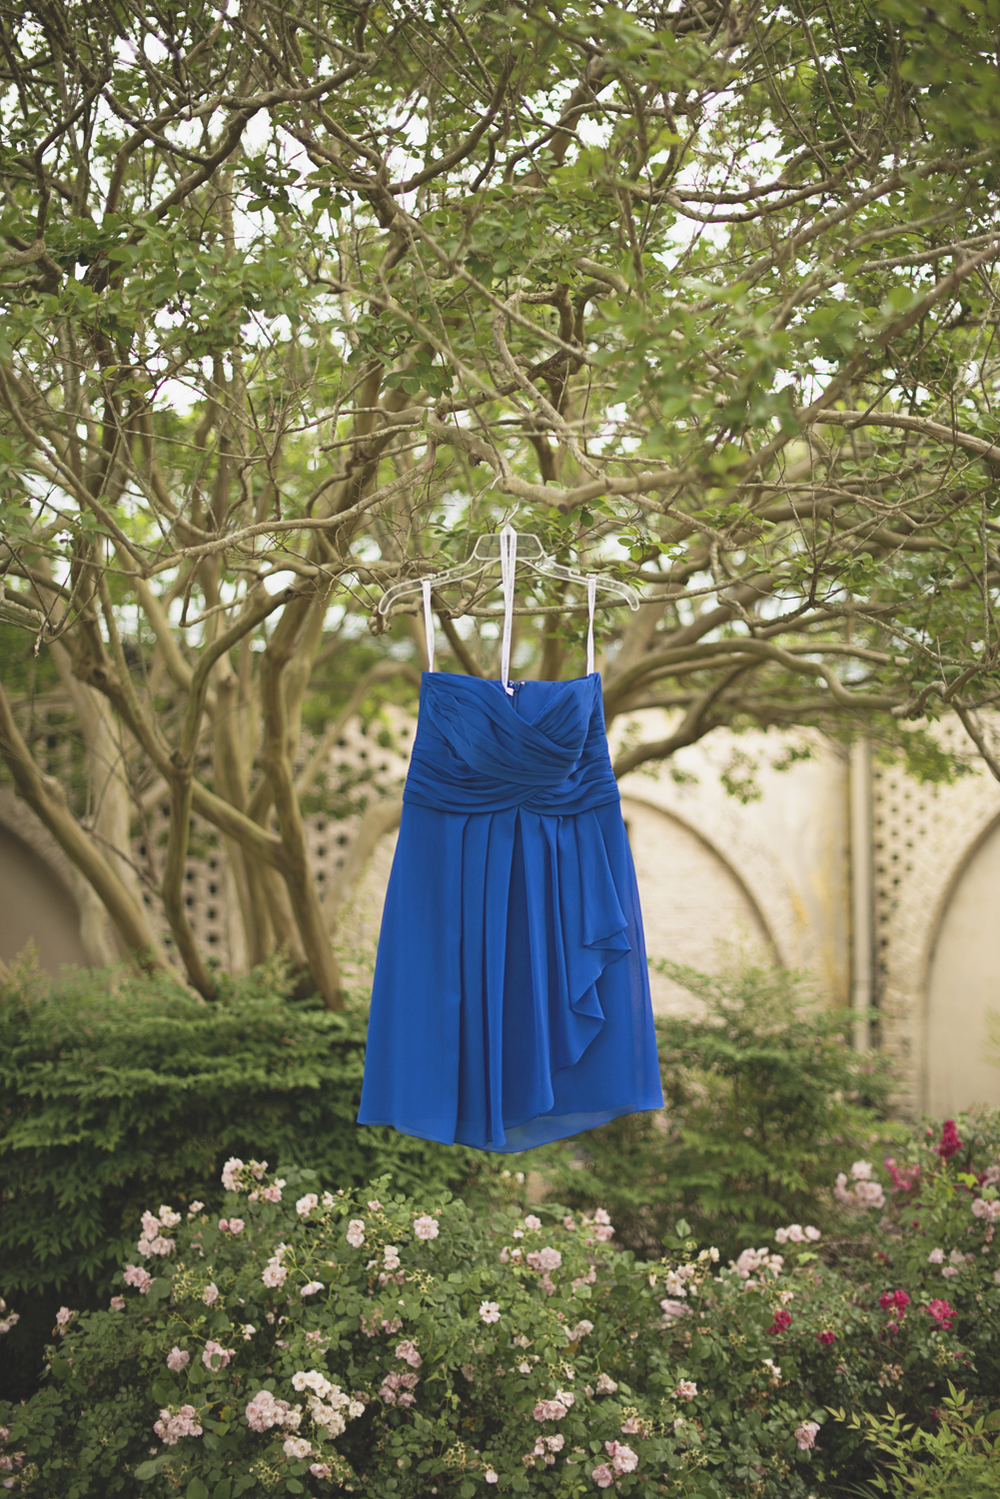 Mariners Museum Wedding | Newport News, Virginia |  Royal blue bridesmaid dress